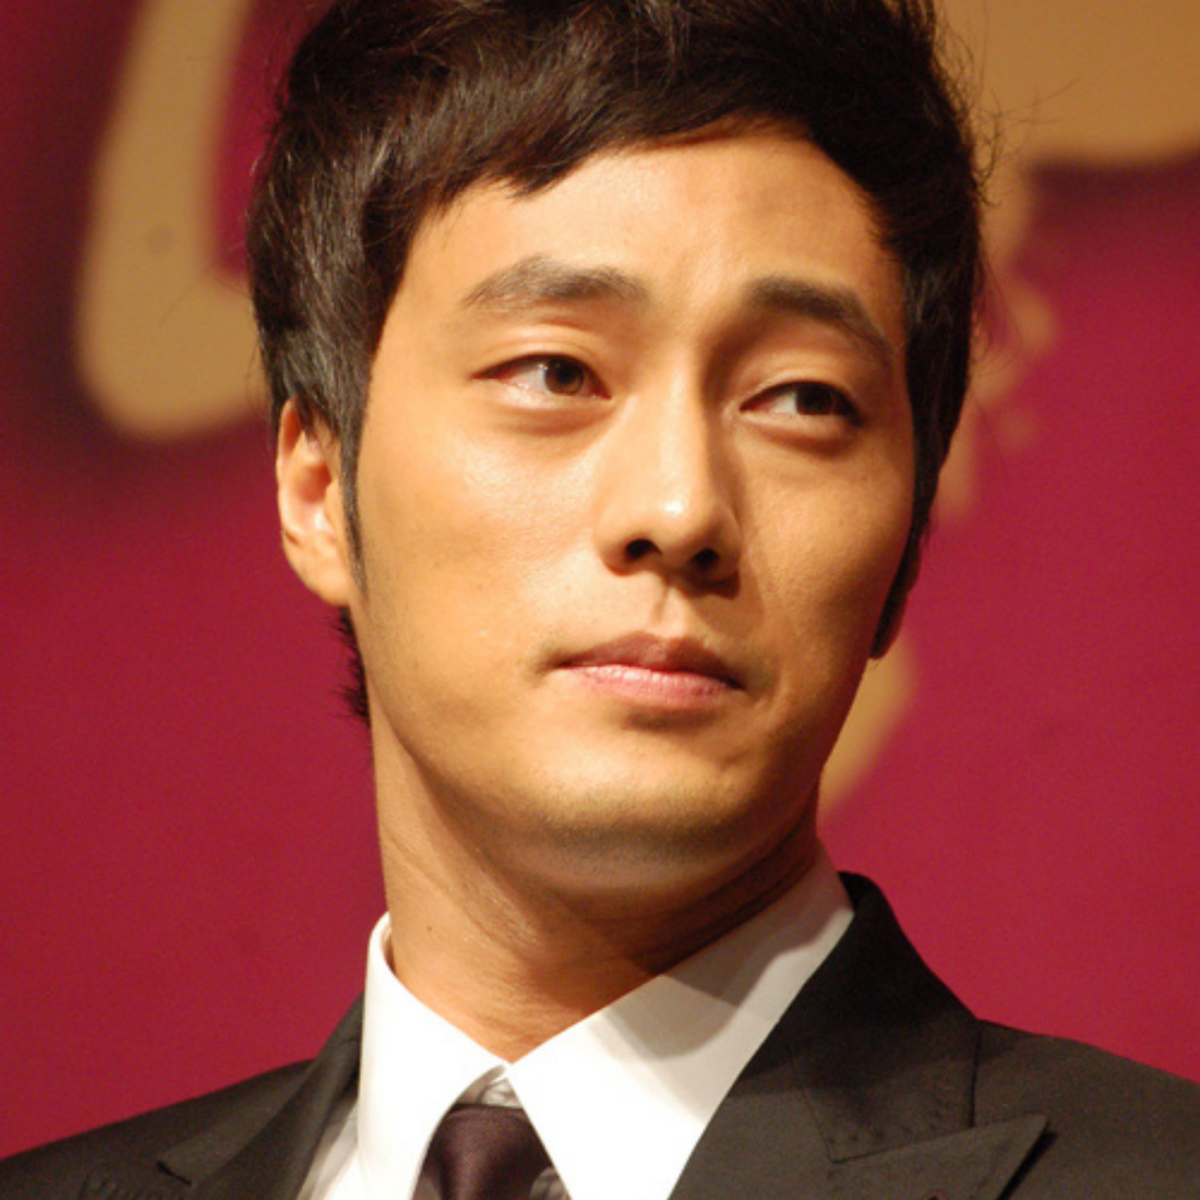 Learn more about So Ji-sub and 17 other K-actors who are known for their acting talents and good looks.